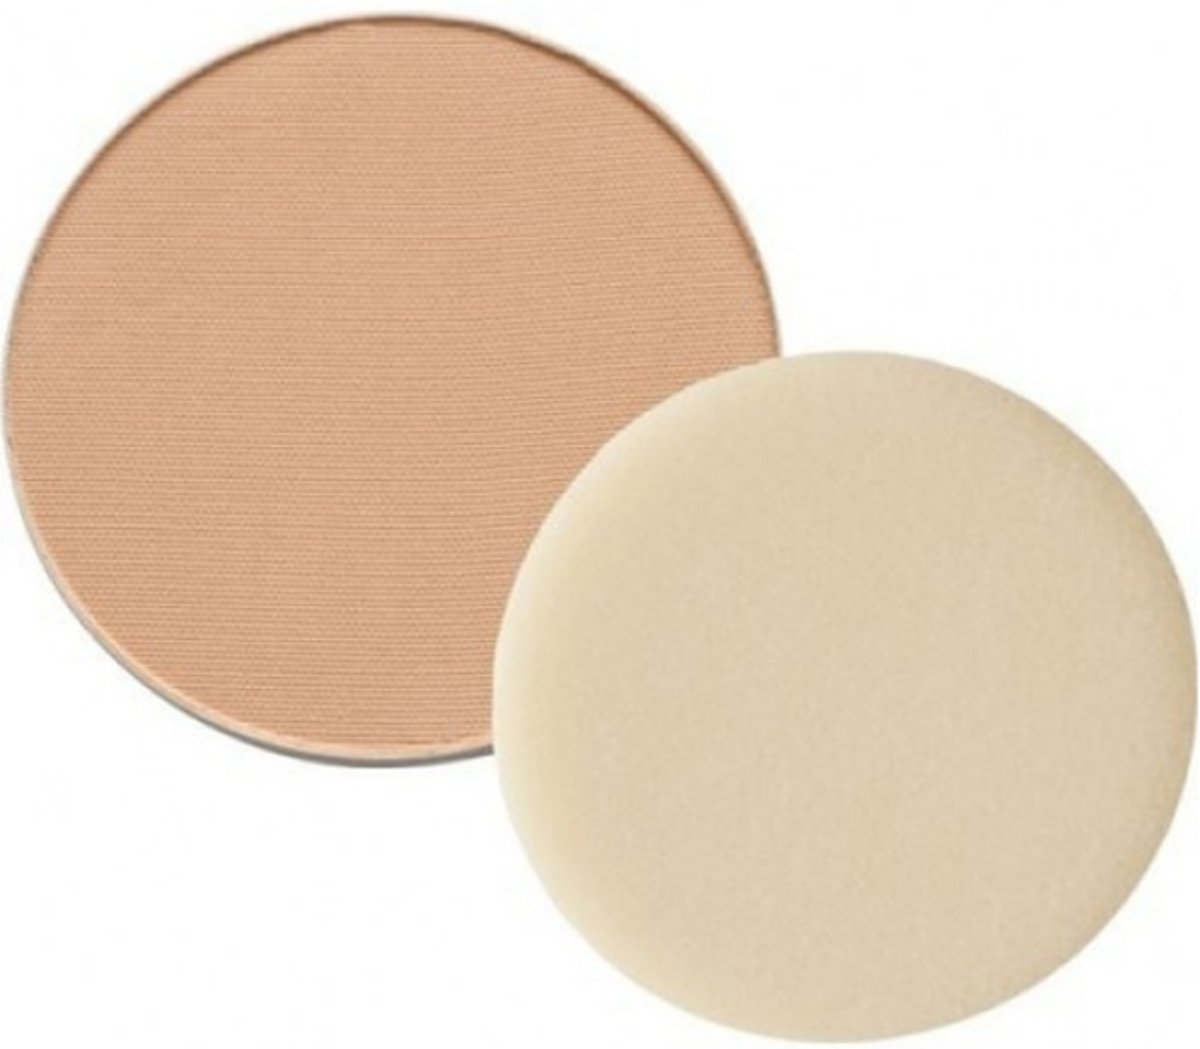 Shiseido Sheer and Perfect Compact Foundation Refill 10 gr - I40 - Natural Fair Ivory